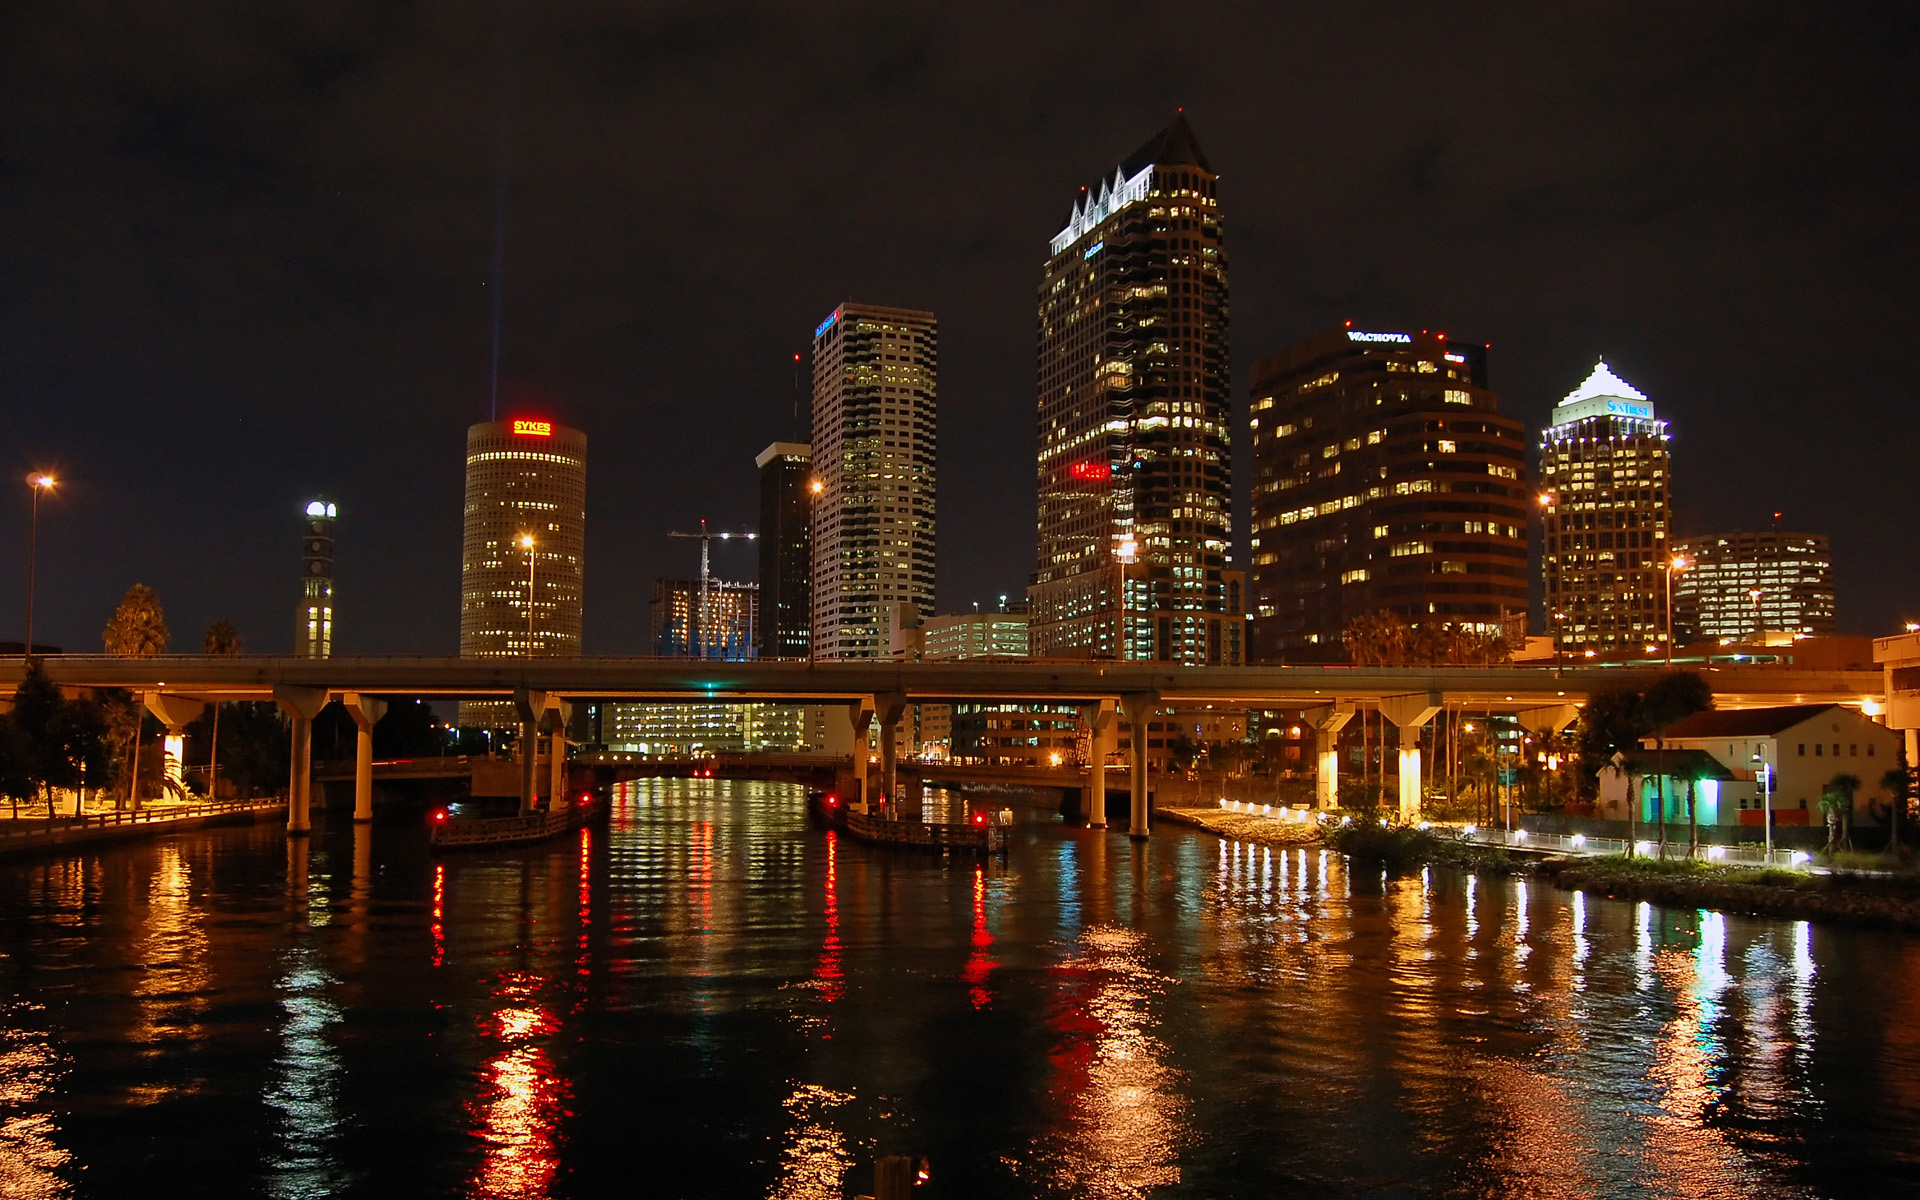 Tampa Bay Nights 551.55 Kb